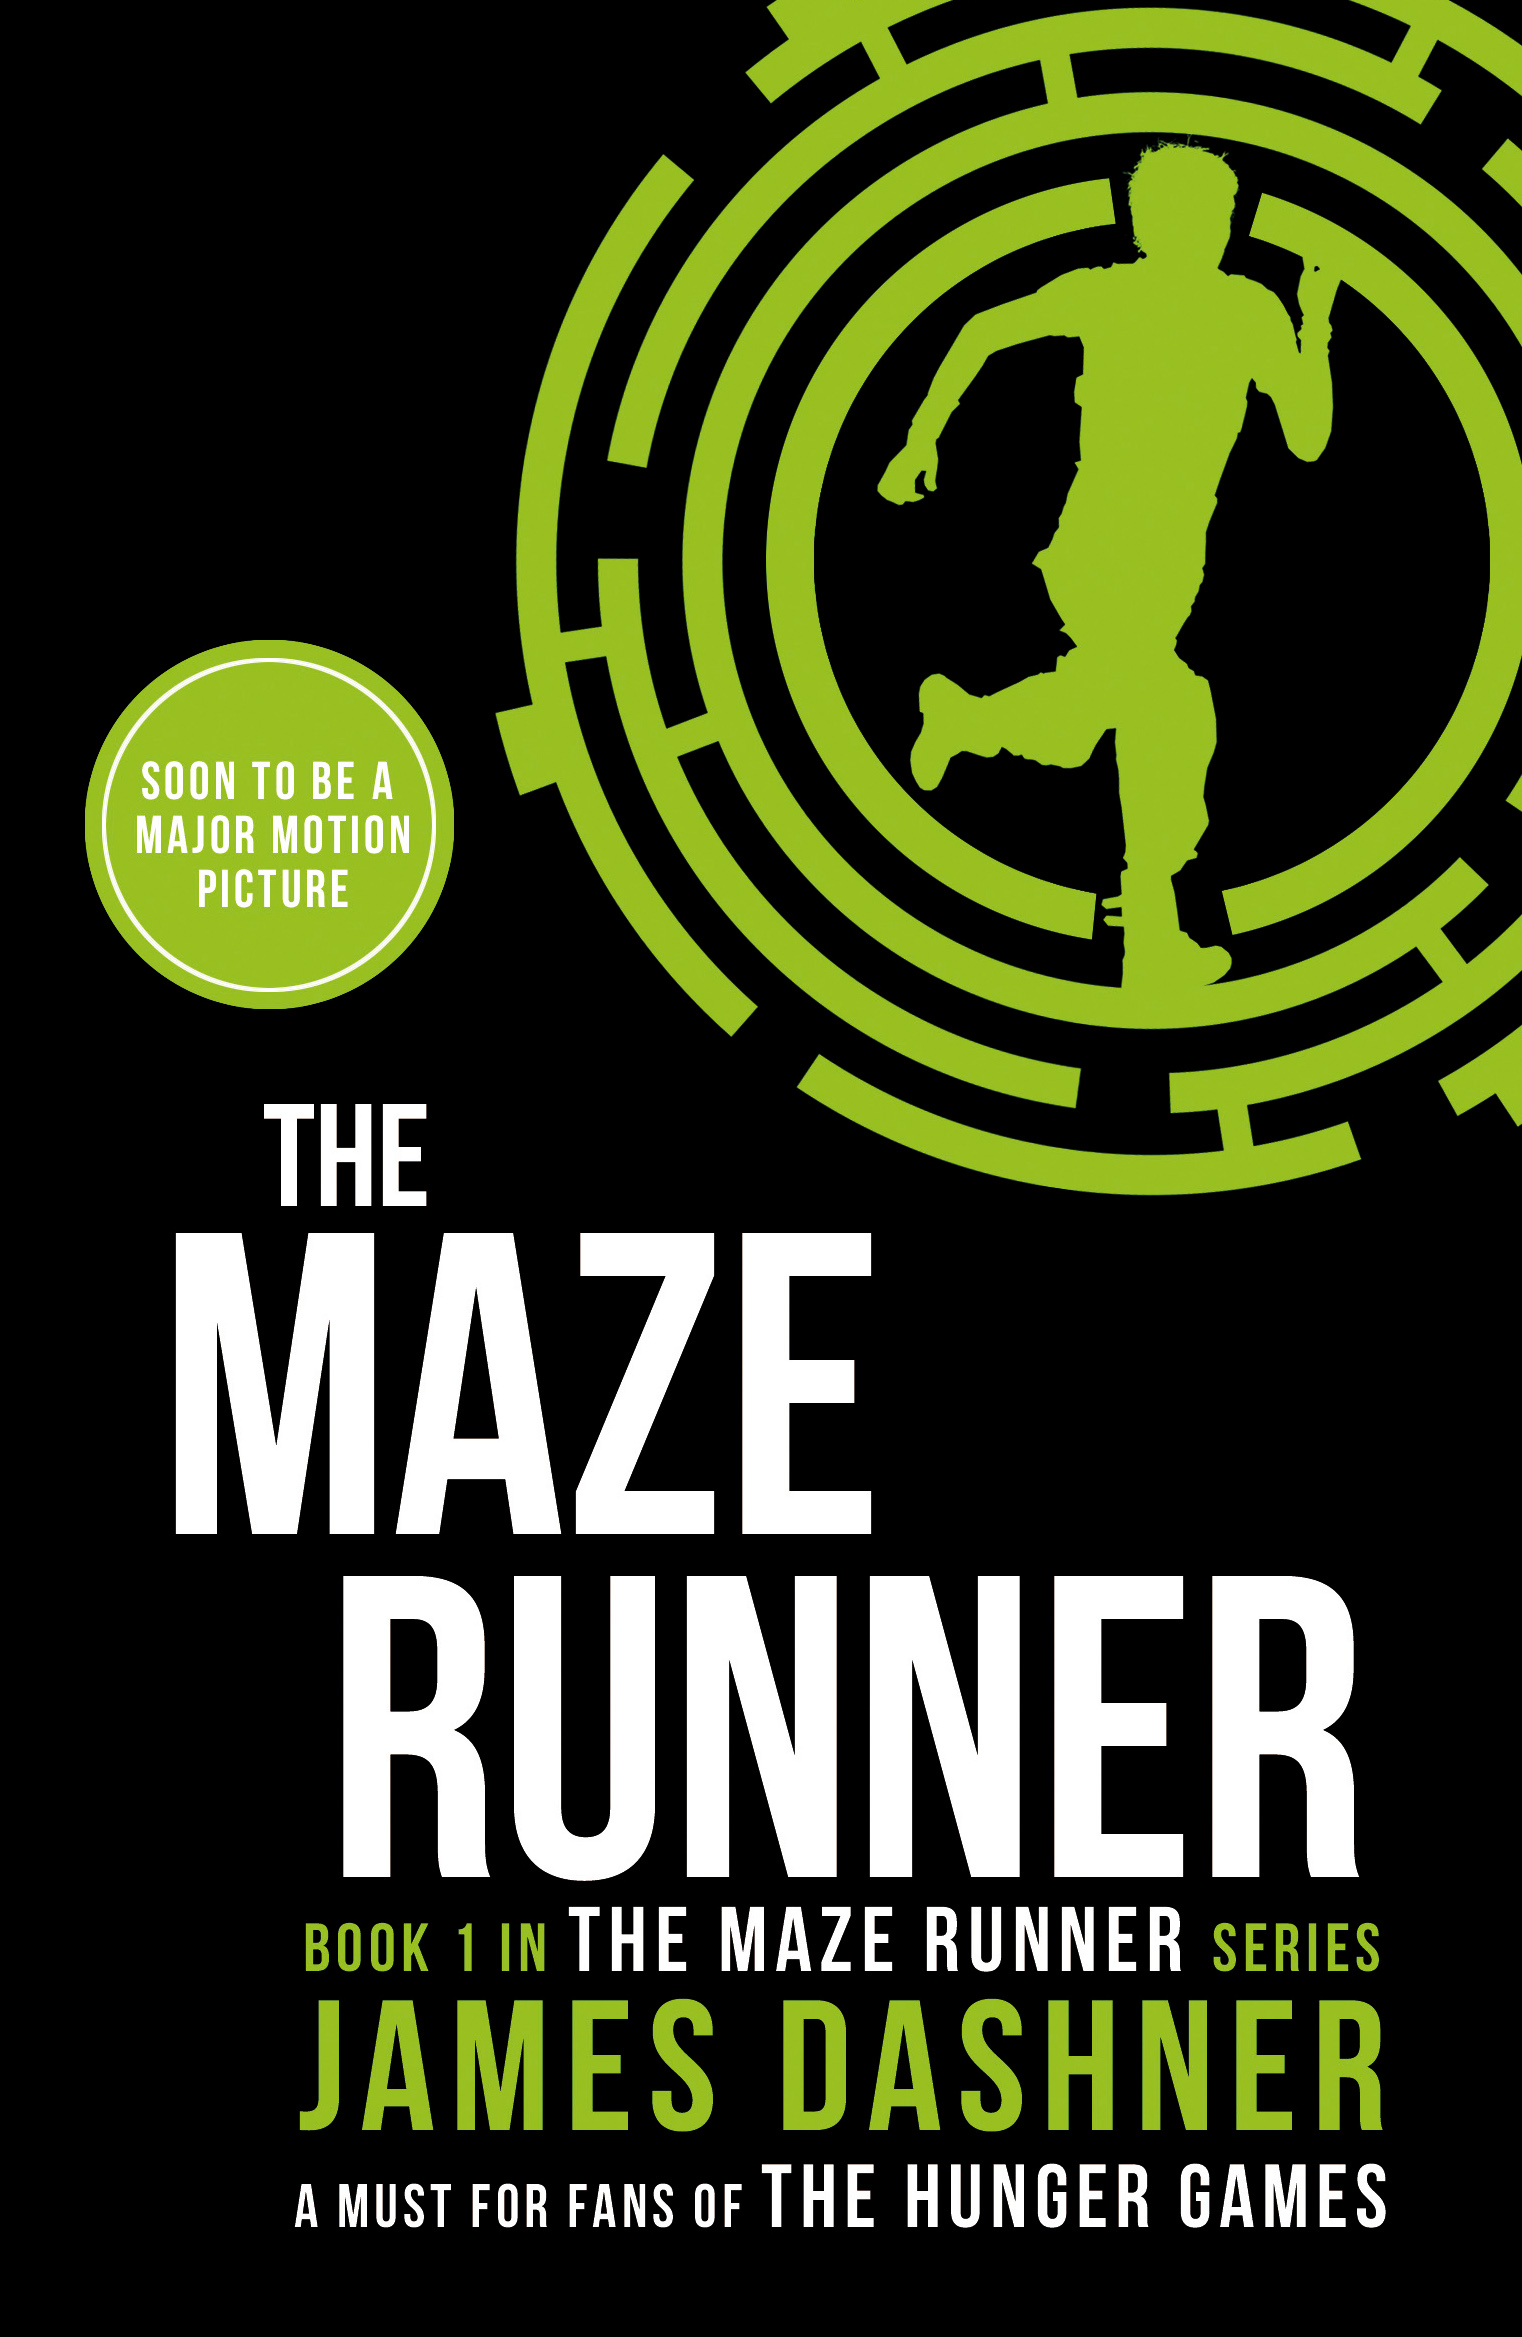 the-maze-runner-image